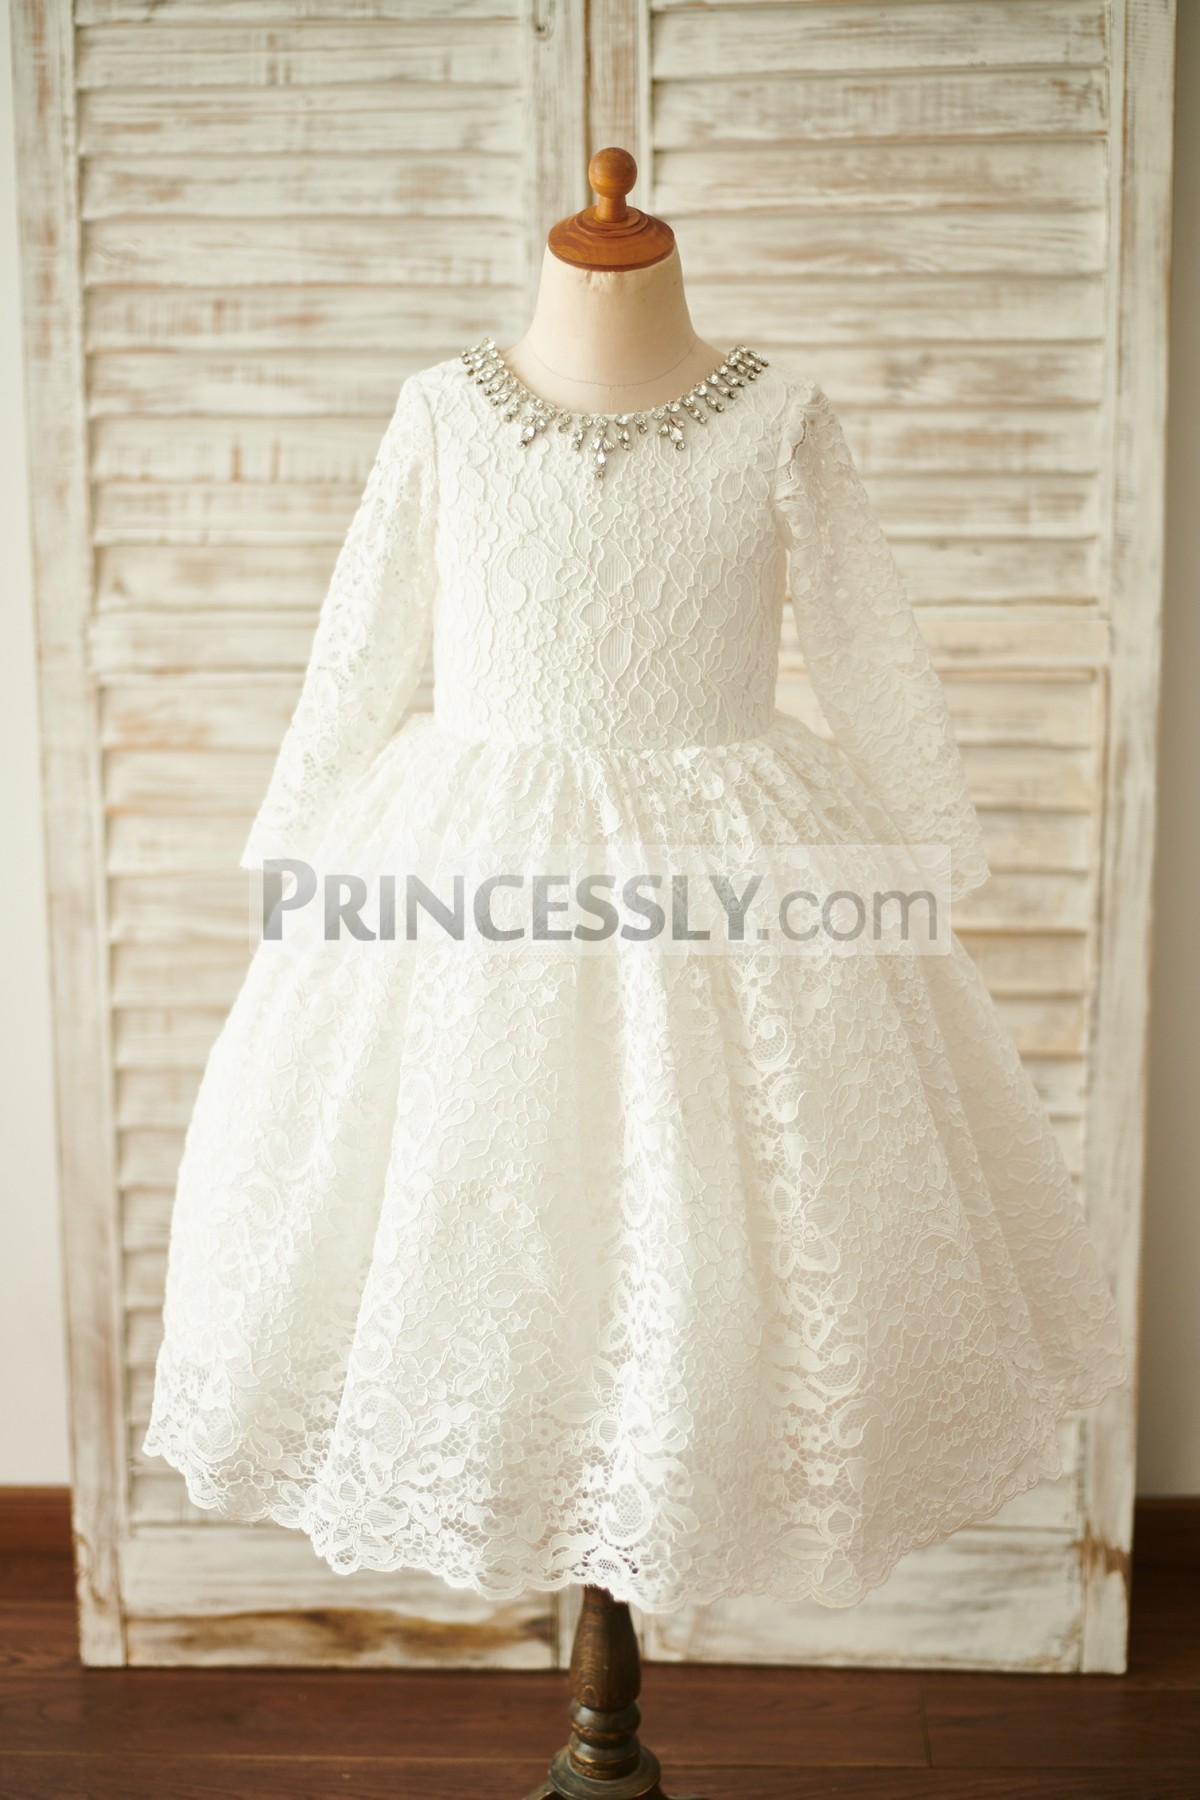 Ivory Floral Lace Wedding Baby Girl Dress